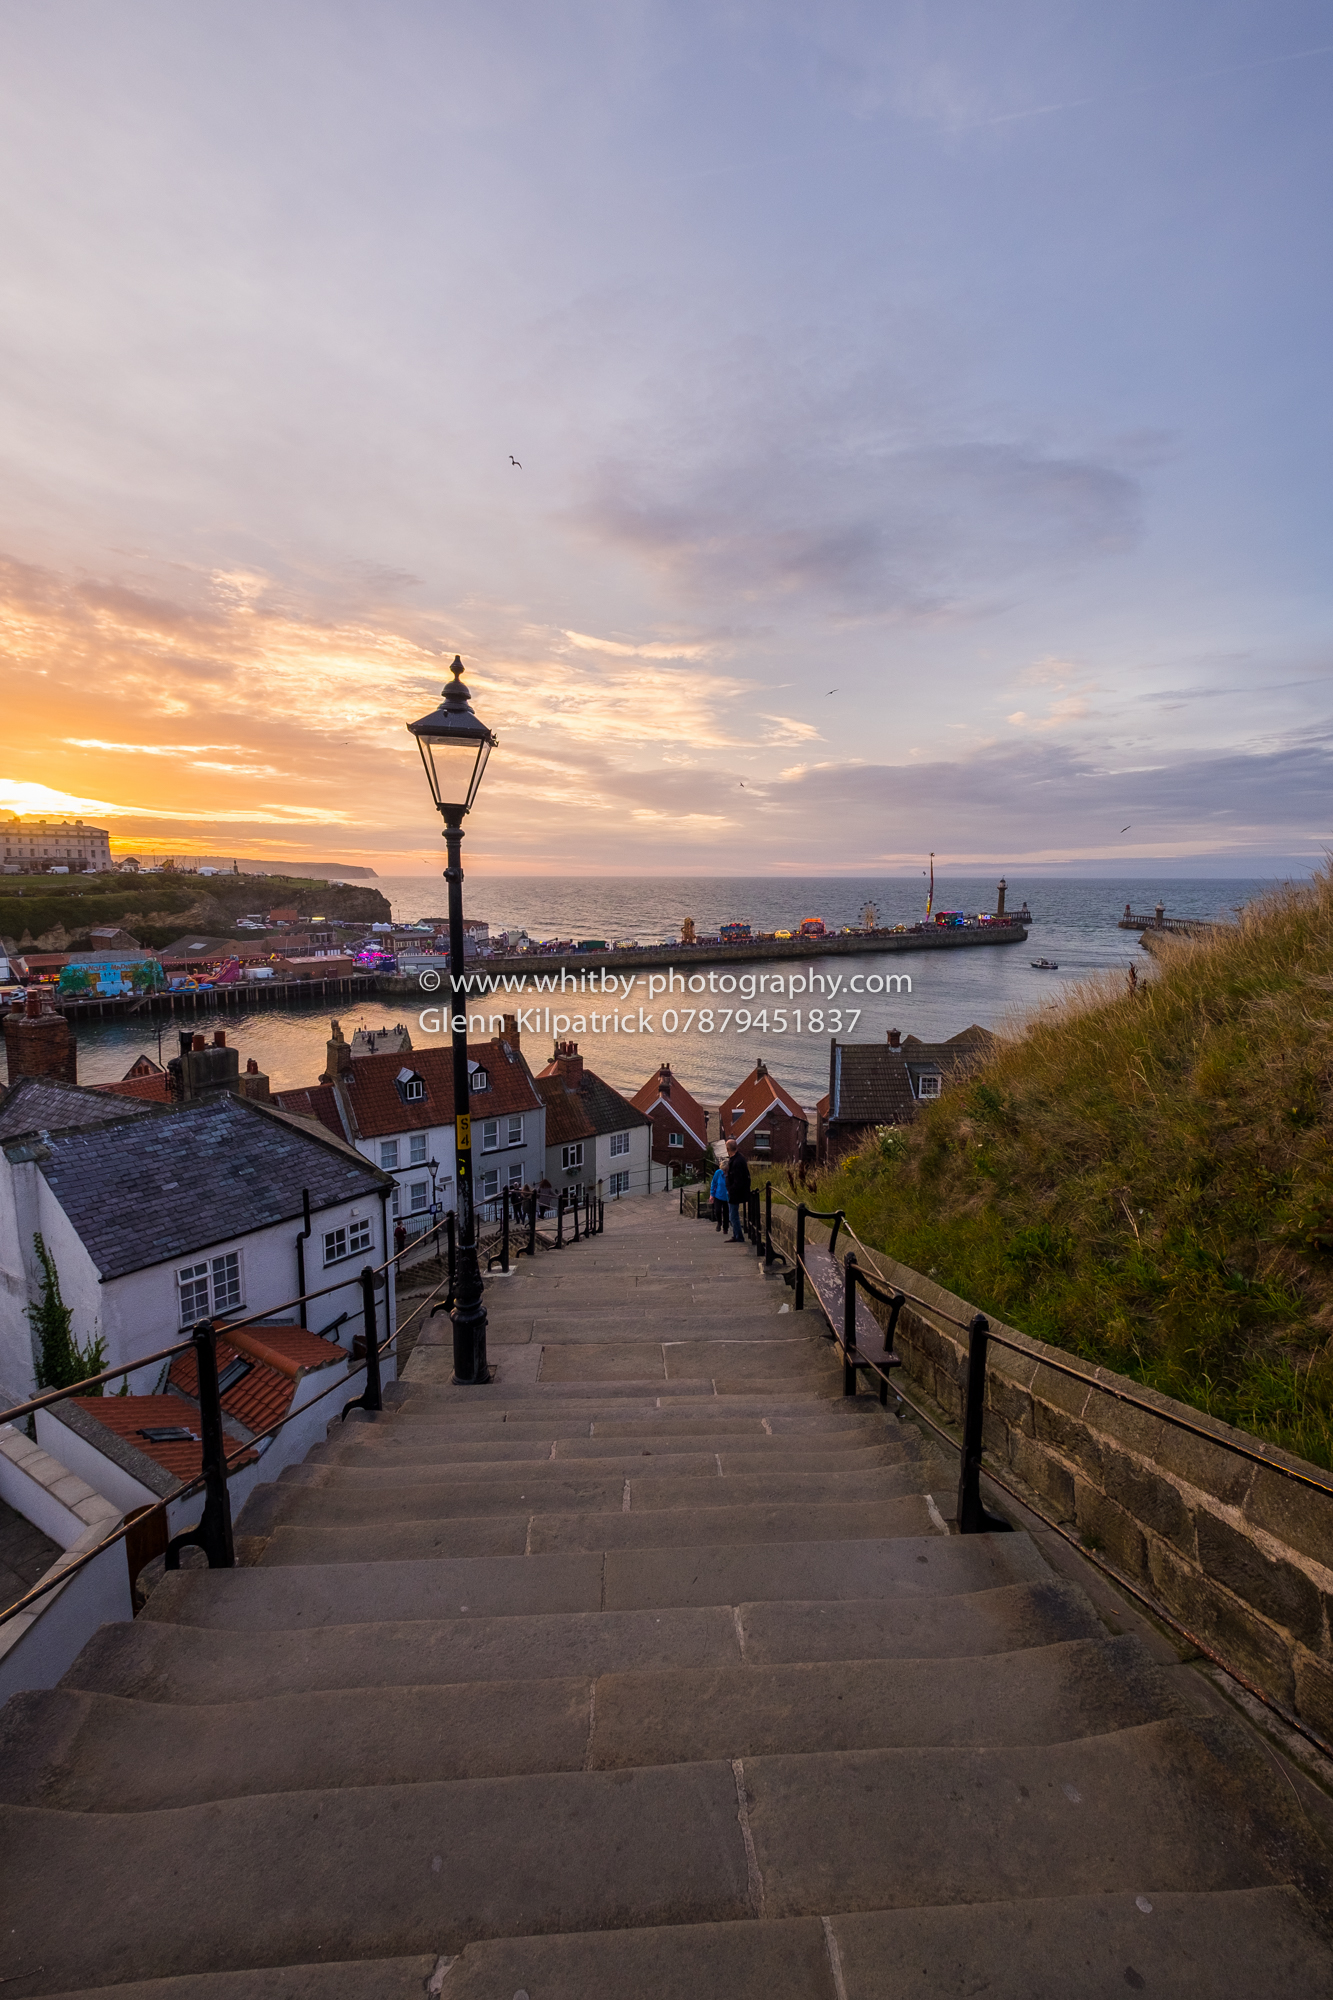 199 Steps At Whitby - Whitby Regatta Photographs For Sale